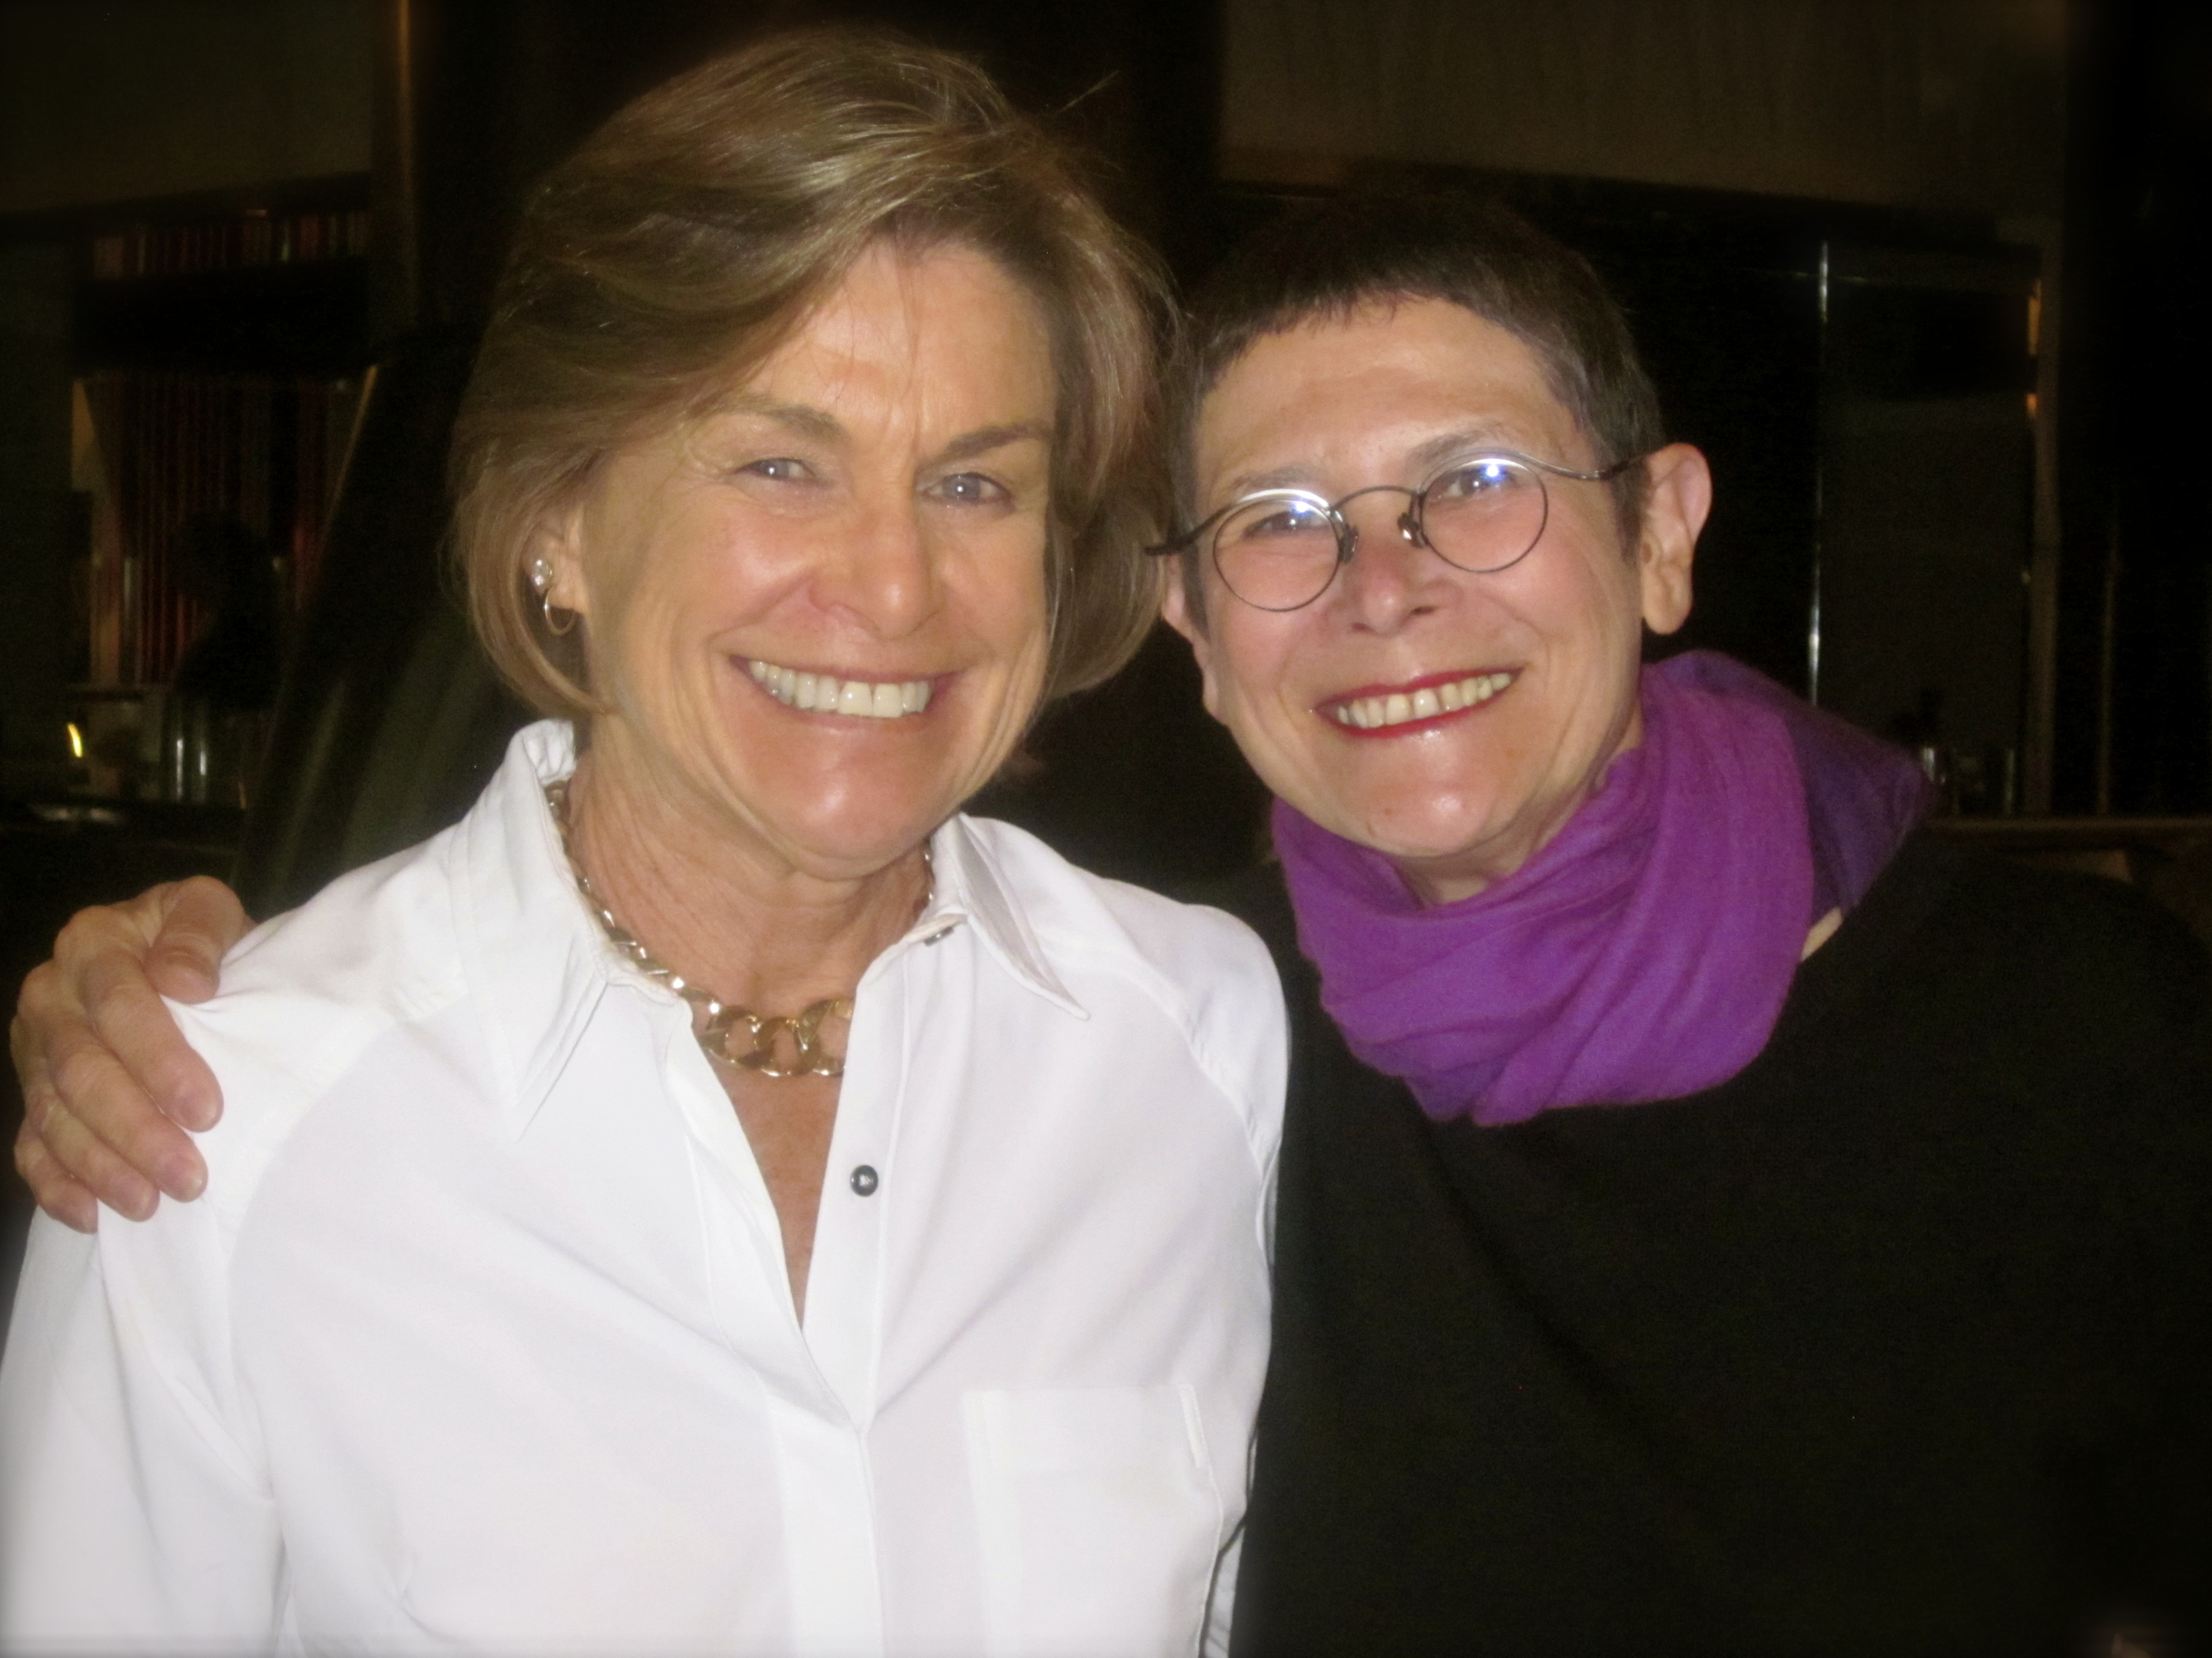 With Dorie Greenspan who was the keynote speaker at last year's IFBC in Seattle.